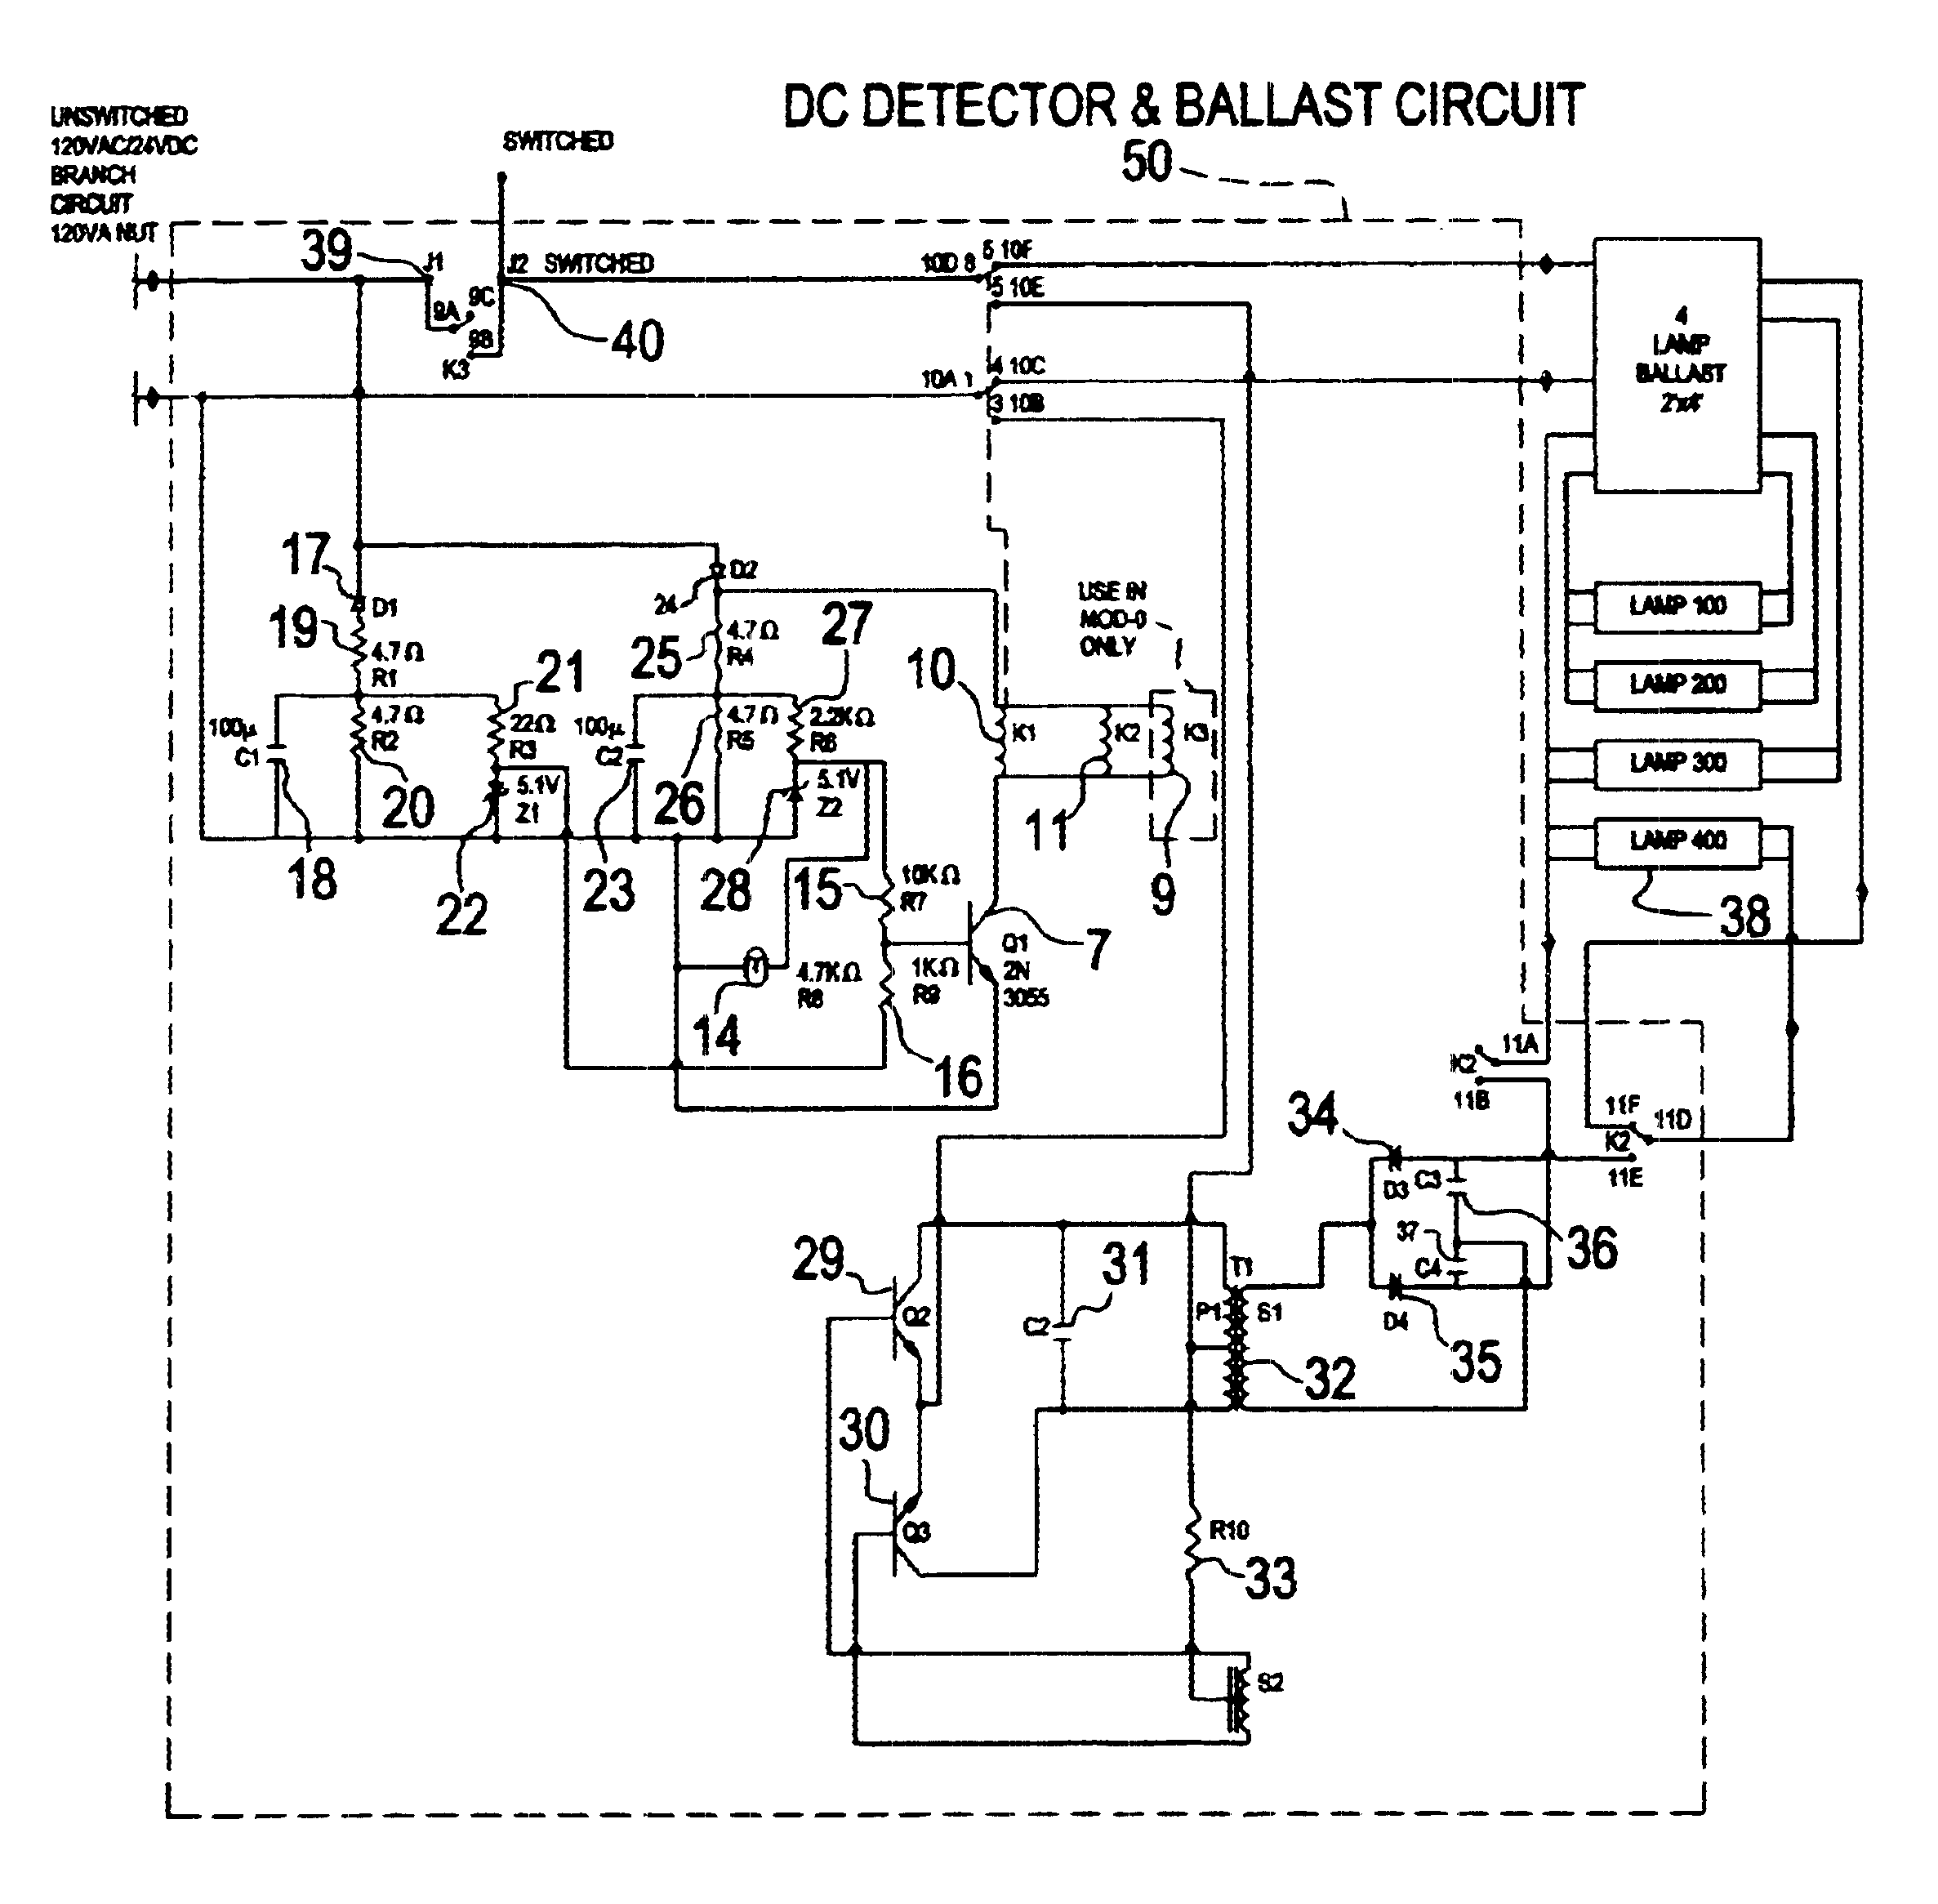 Bodine S50 Emergency Ballast Wiring Diagram Library